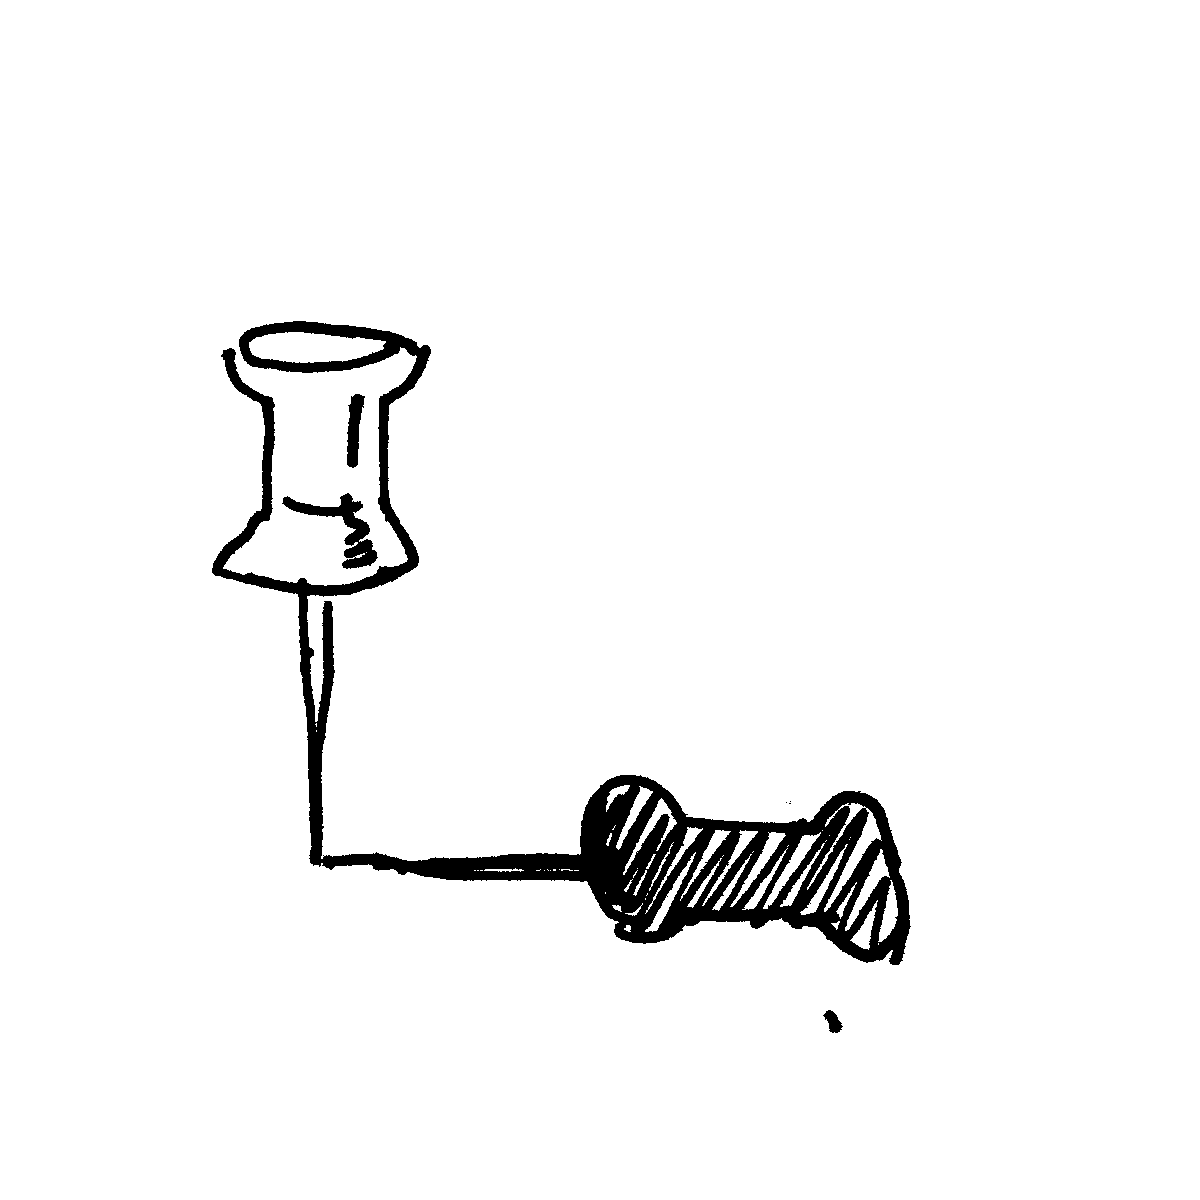 push pin cartoon doodle